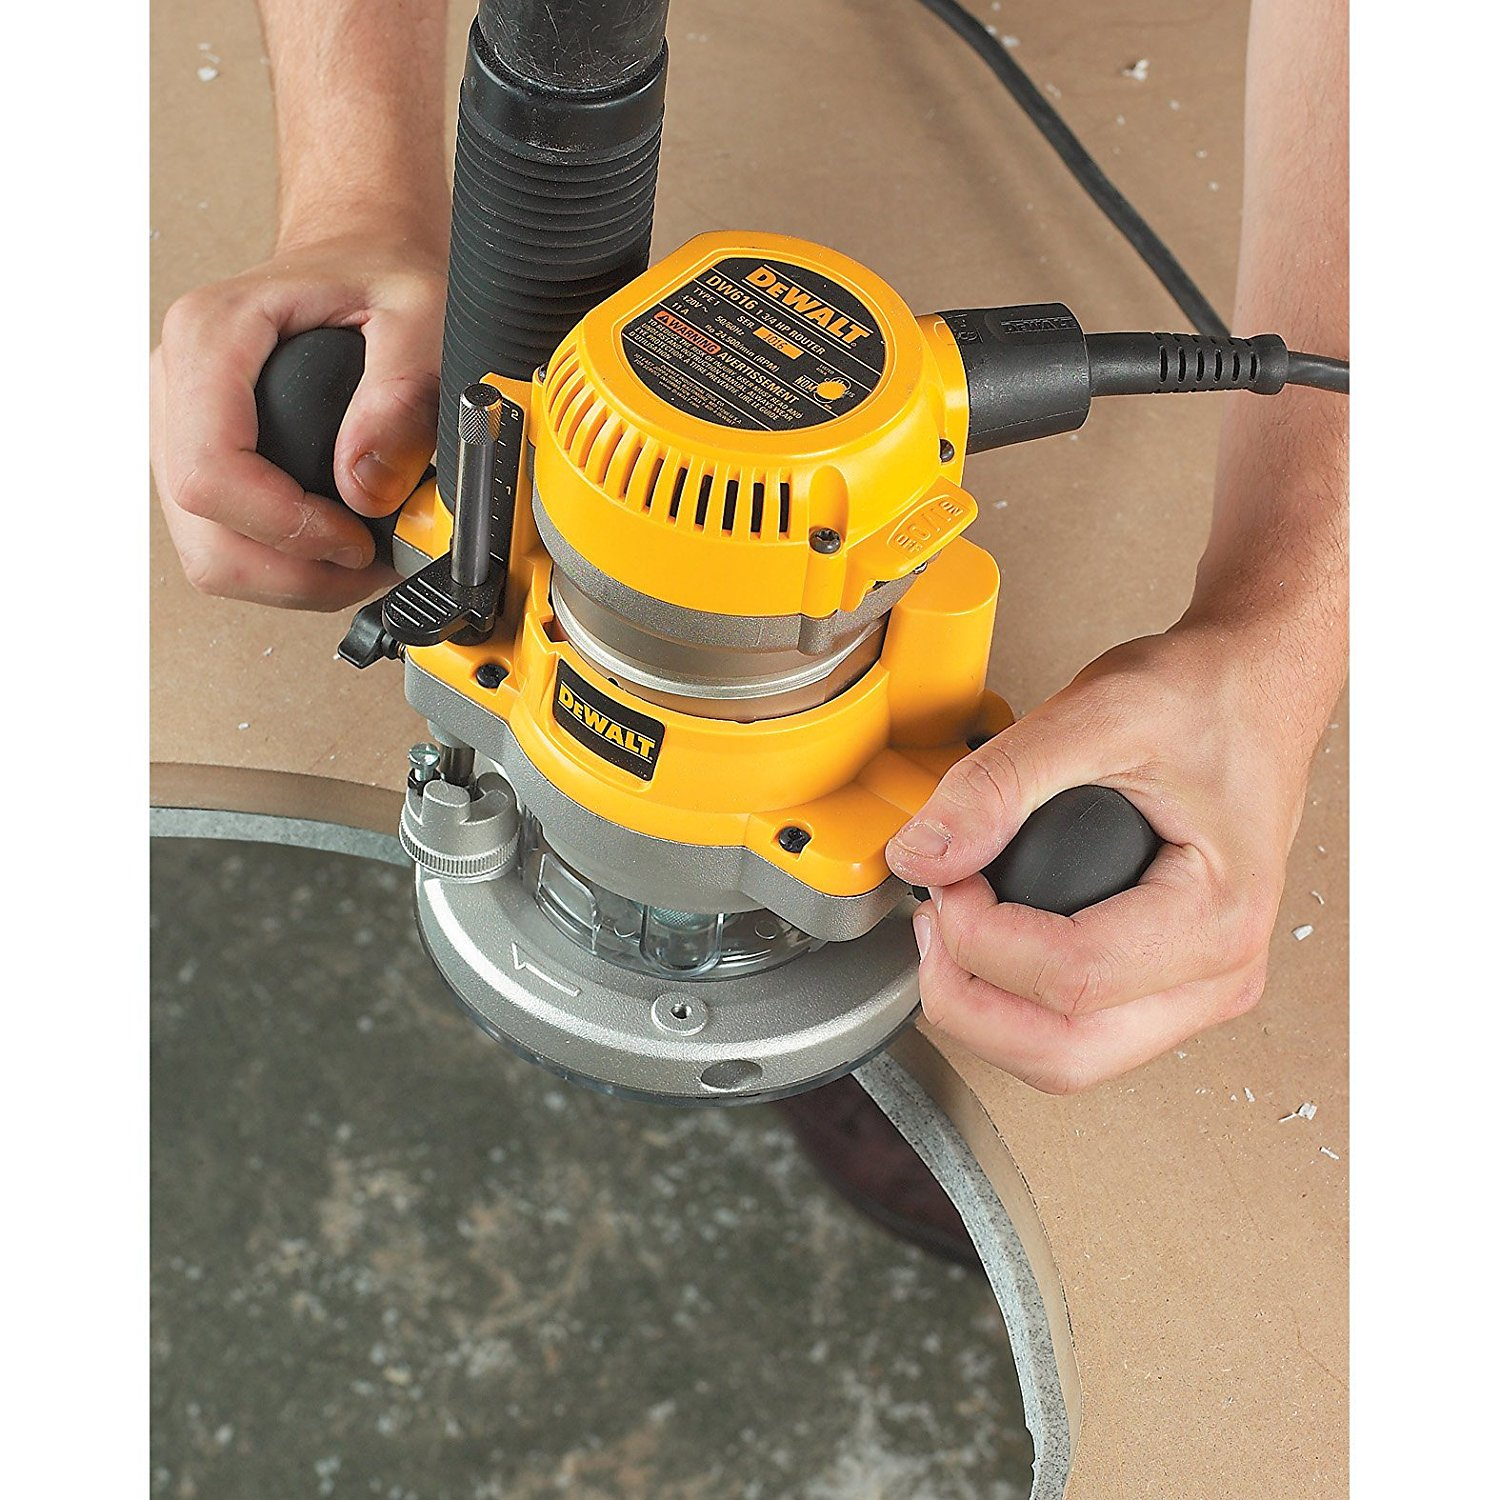 DEWALT DW6182 Plunge drill press